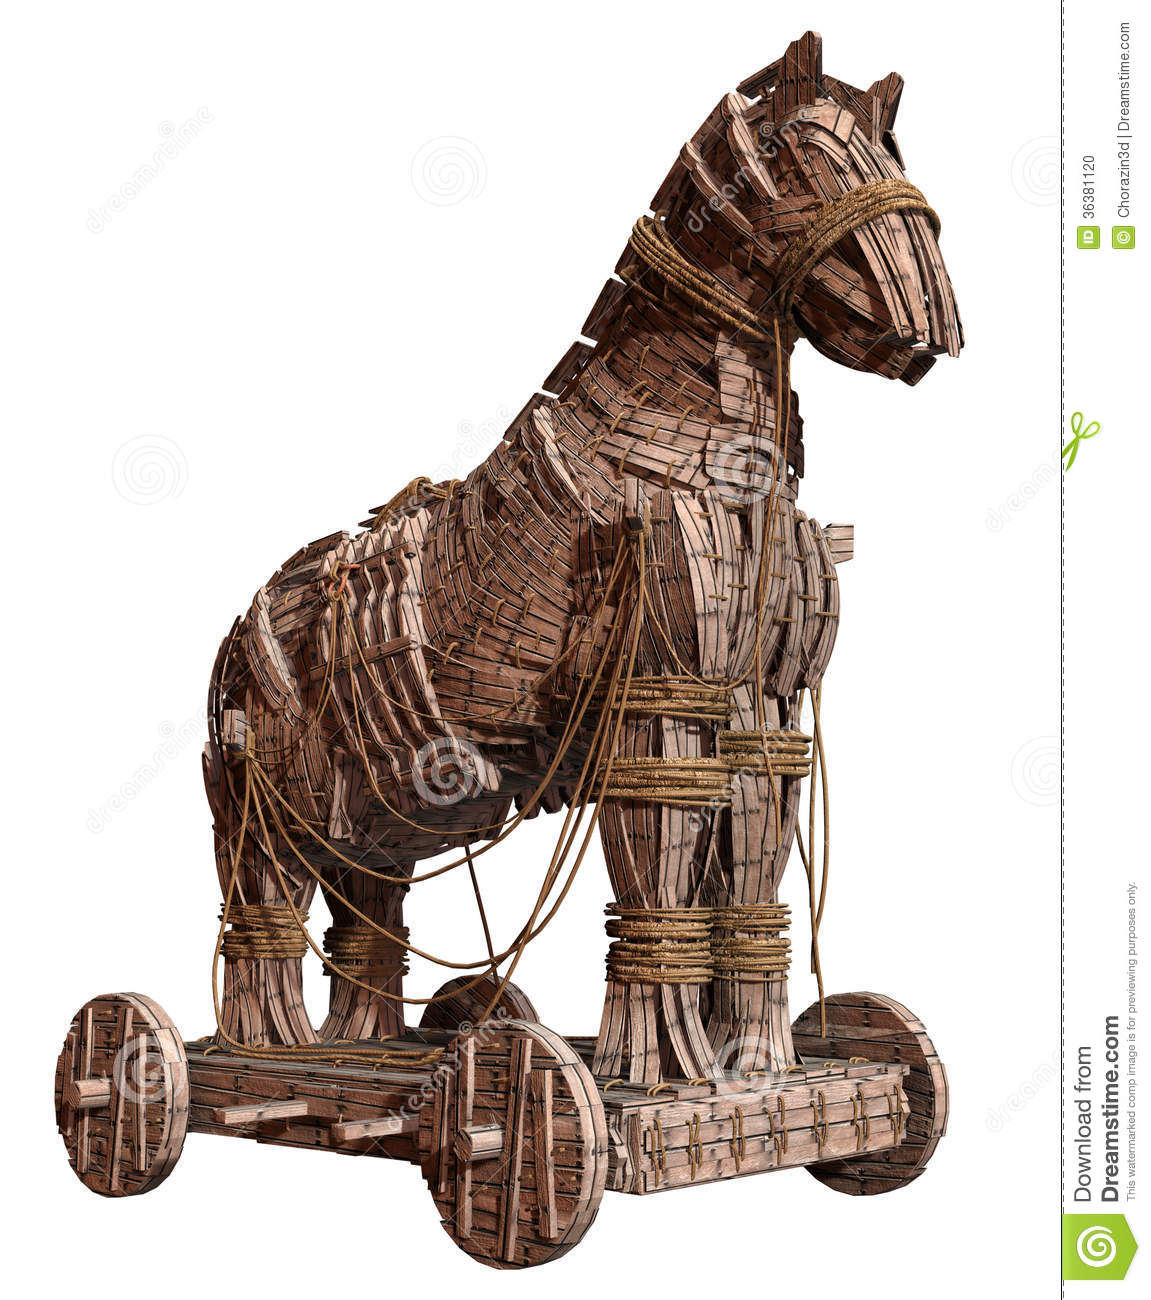 Ancient Wooden Horse Stock Photo - Image: 36381120